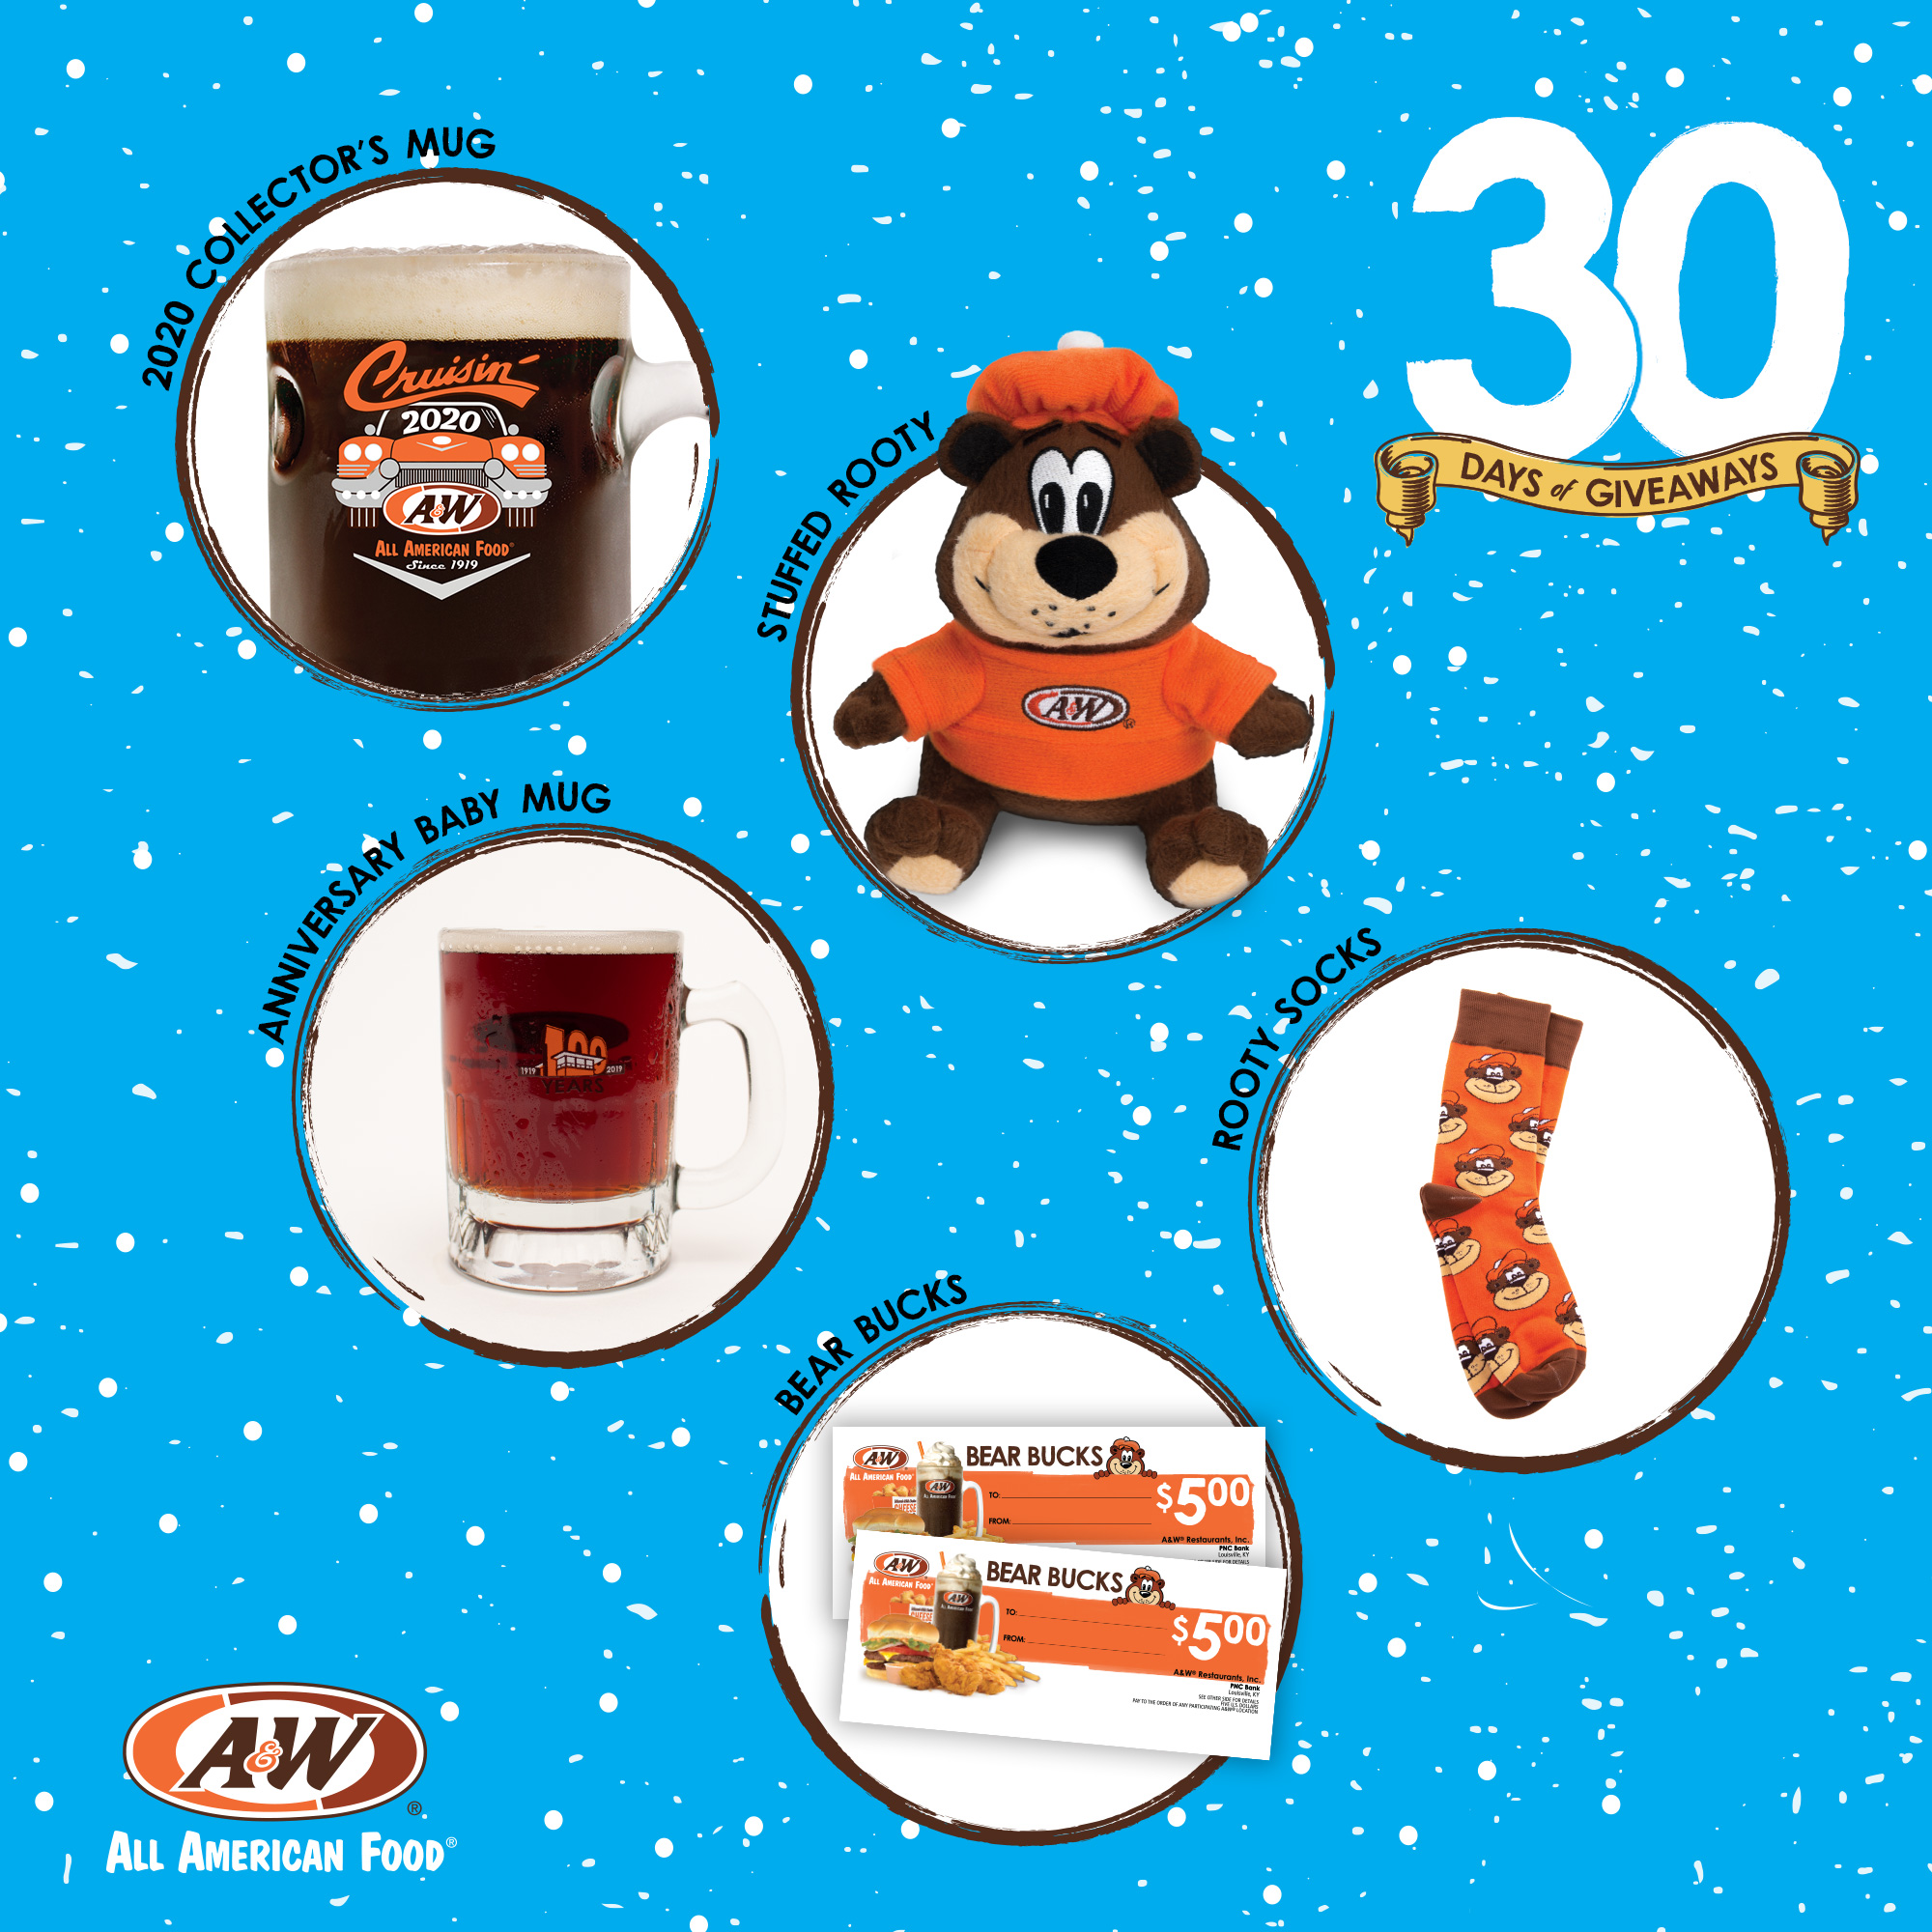 $20 Bear Bucks, Stuffed Rooty, 100th Anniversary Baby Mug, 2020 Collector's Mug, Rooty Socks